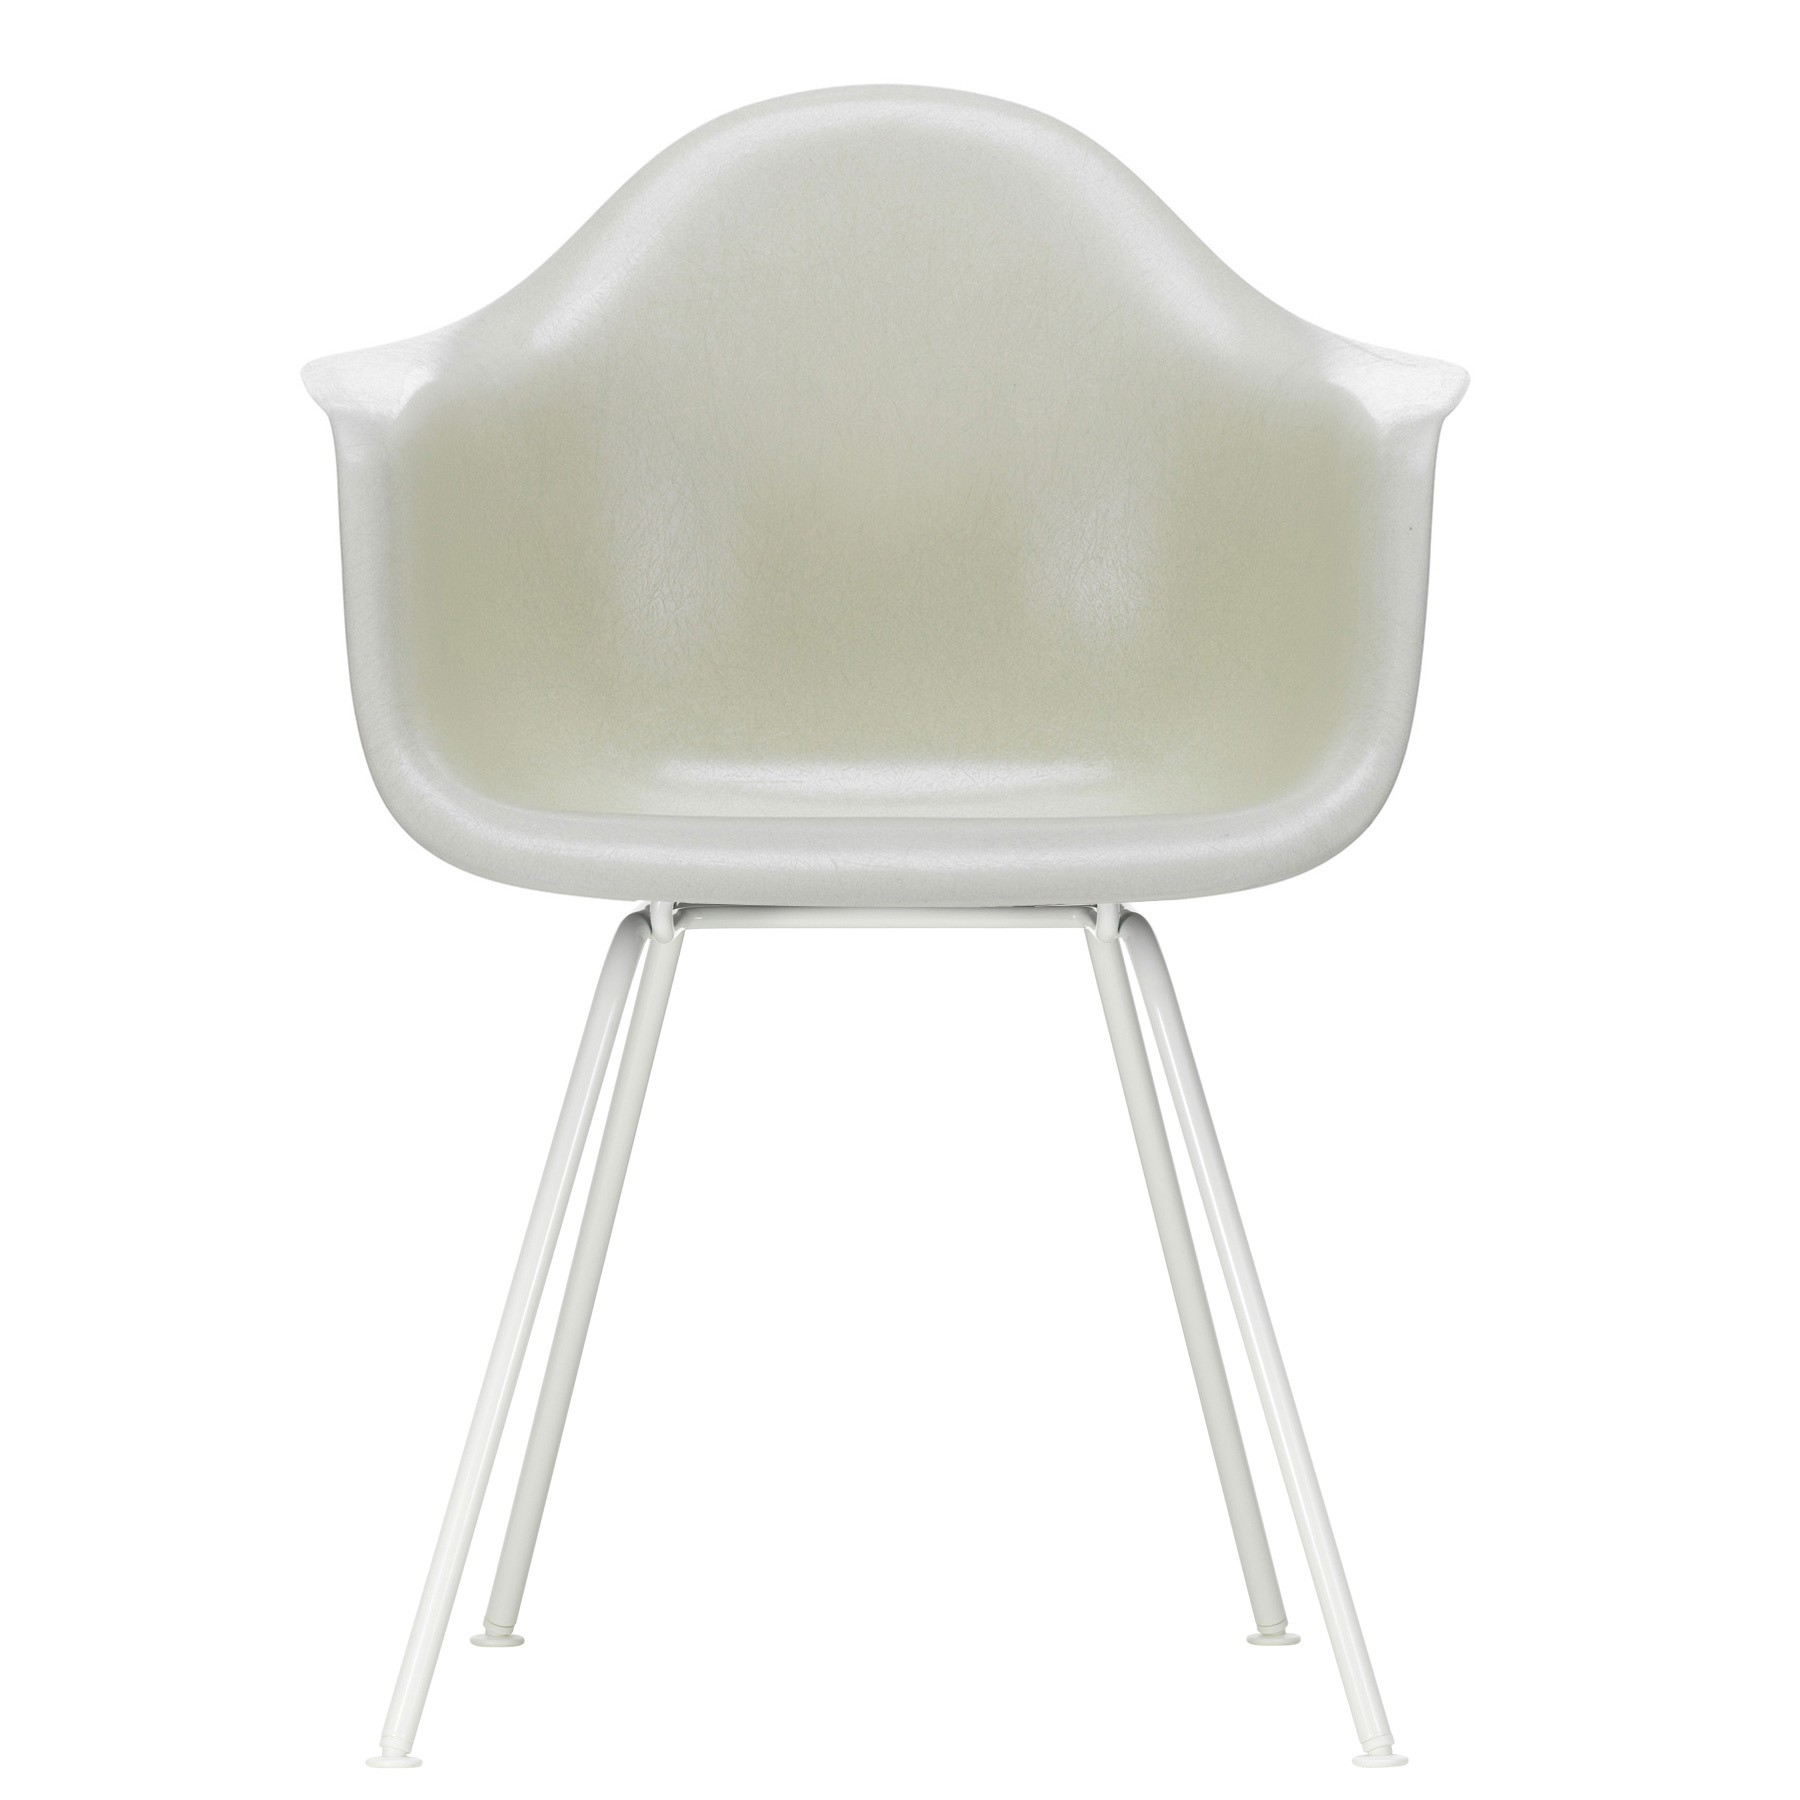 Eames Chair Weiß Vitra Eames Fiberglass Chair Dax White Base | Ambientedirect